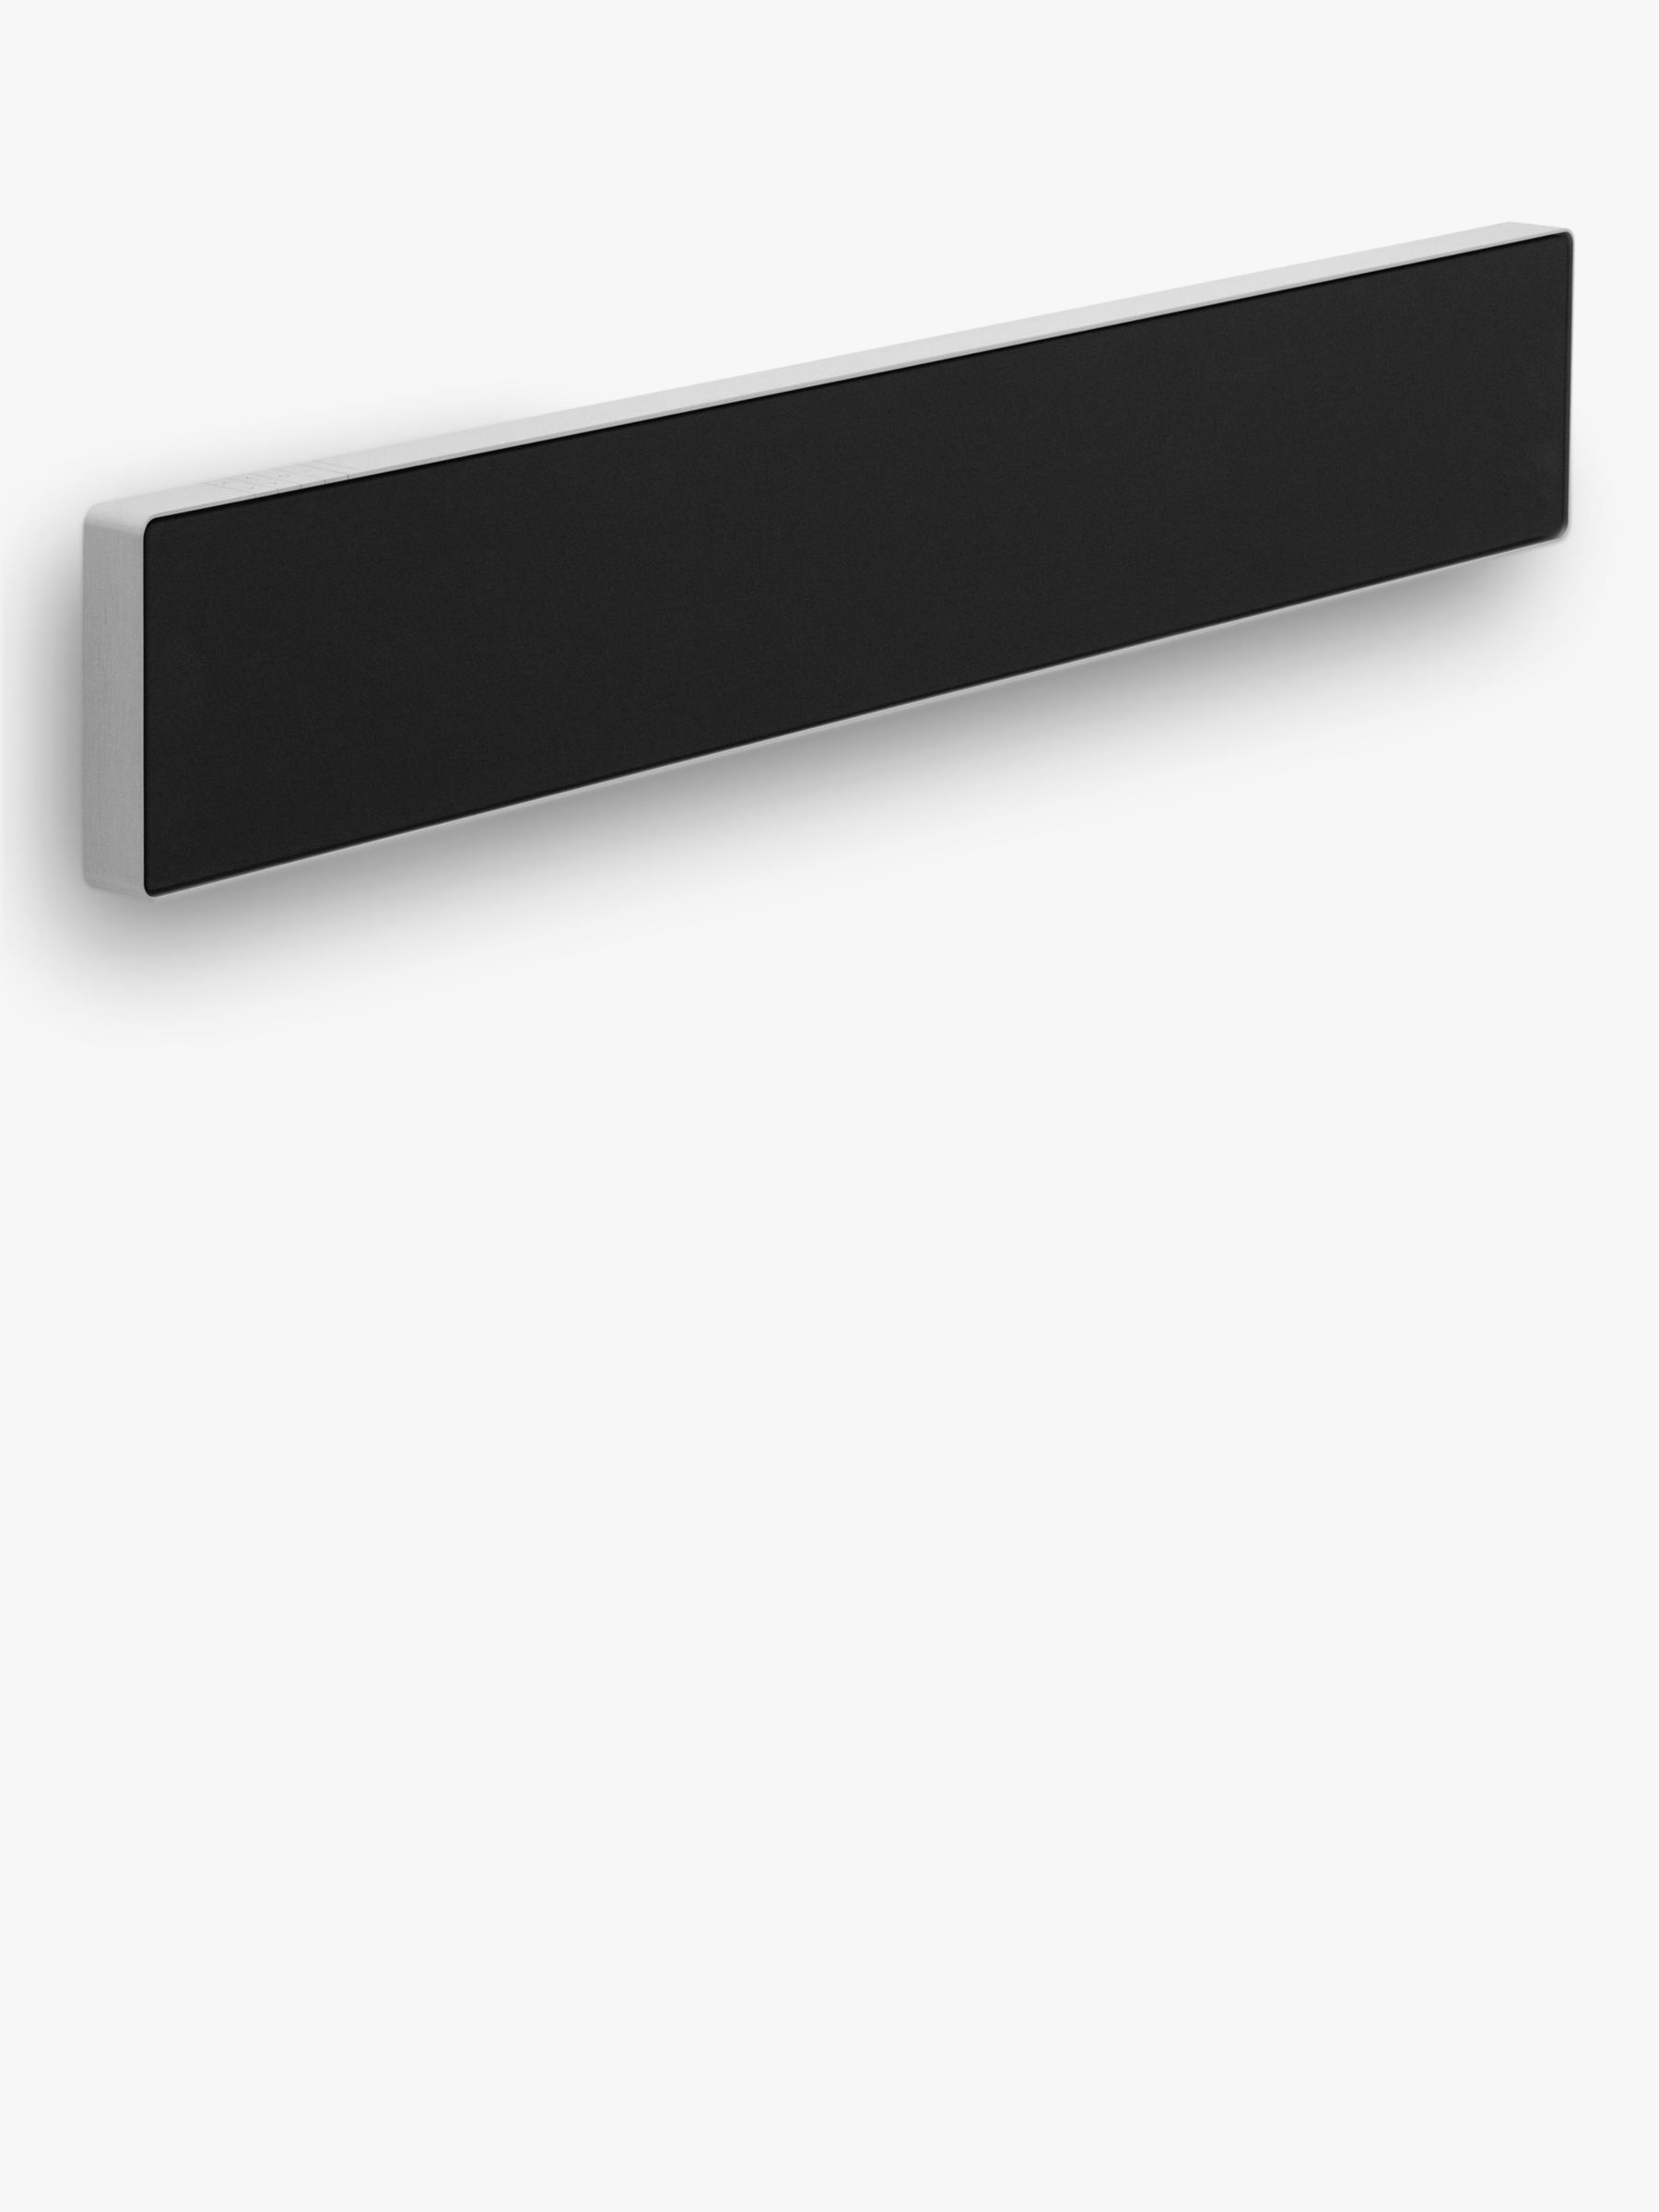 Bang & Olufsen Bang & Olufsen Beosound Stage All-In-One Sound Bar with Dolby Atmos, Chromecast built-in & Apple Airplay 2